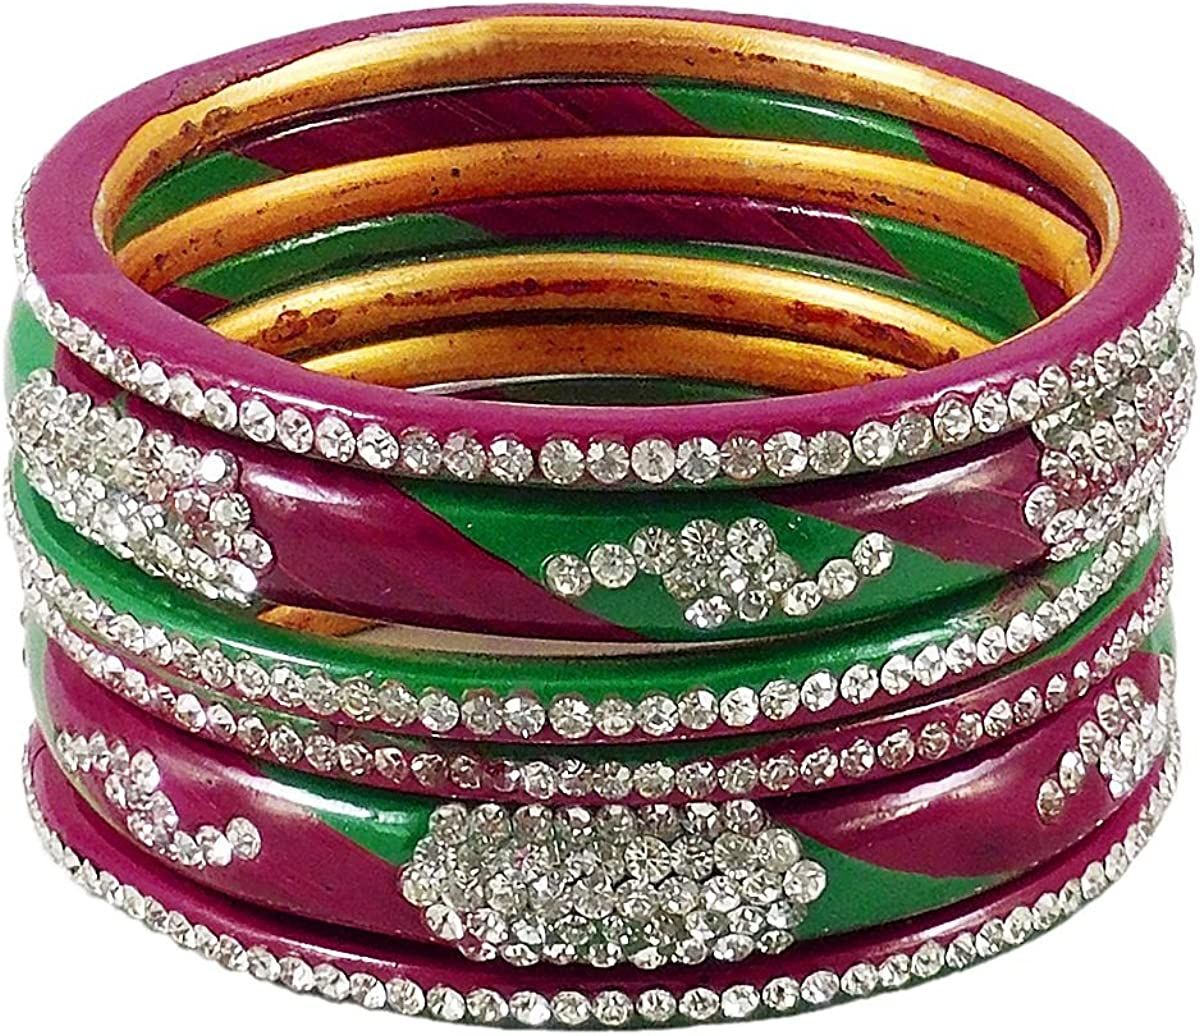 DollsofIndia Stone Studded Maroon with Green Lac Bangles - Size - 2-7 - Dia - 2.4 inches (RE75)